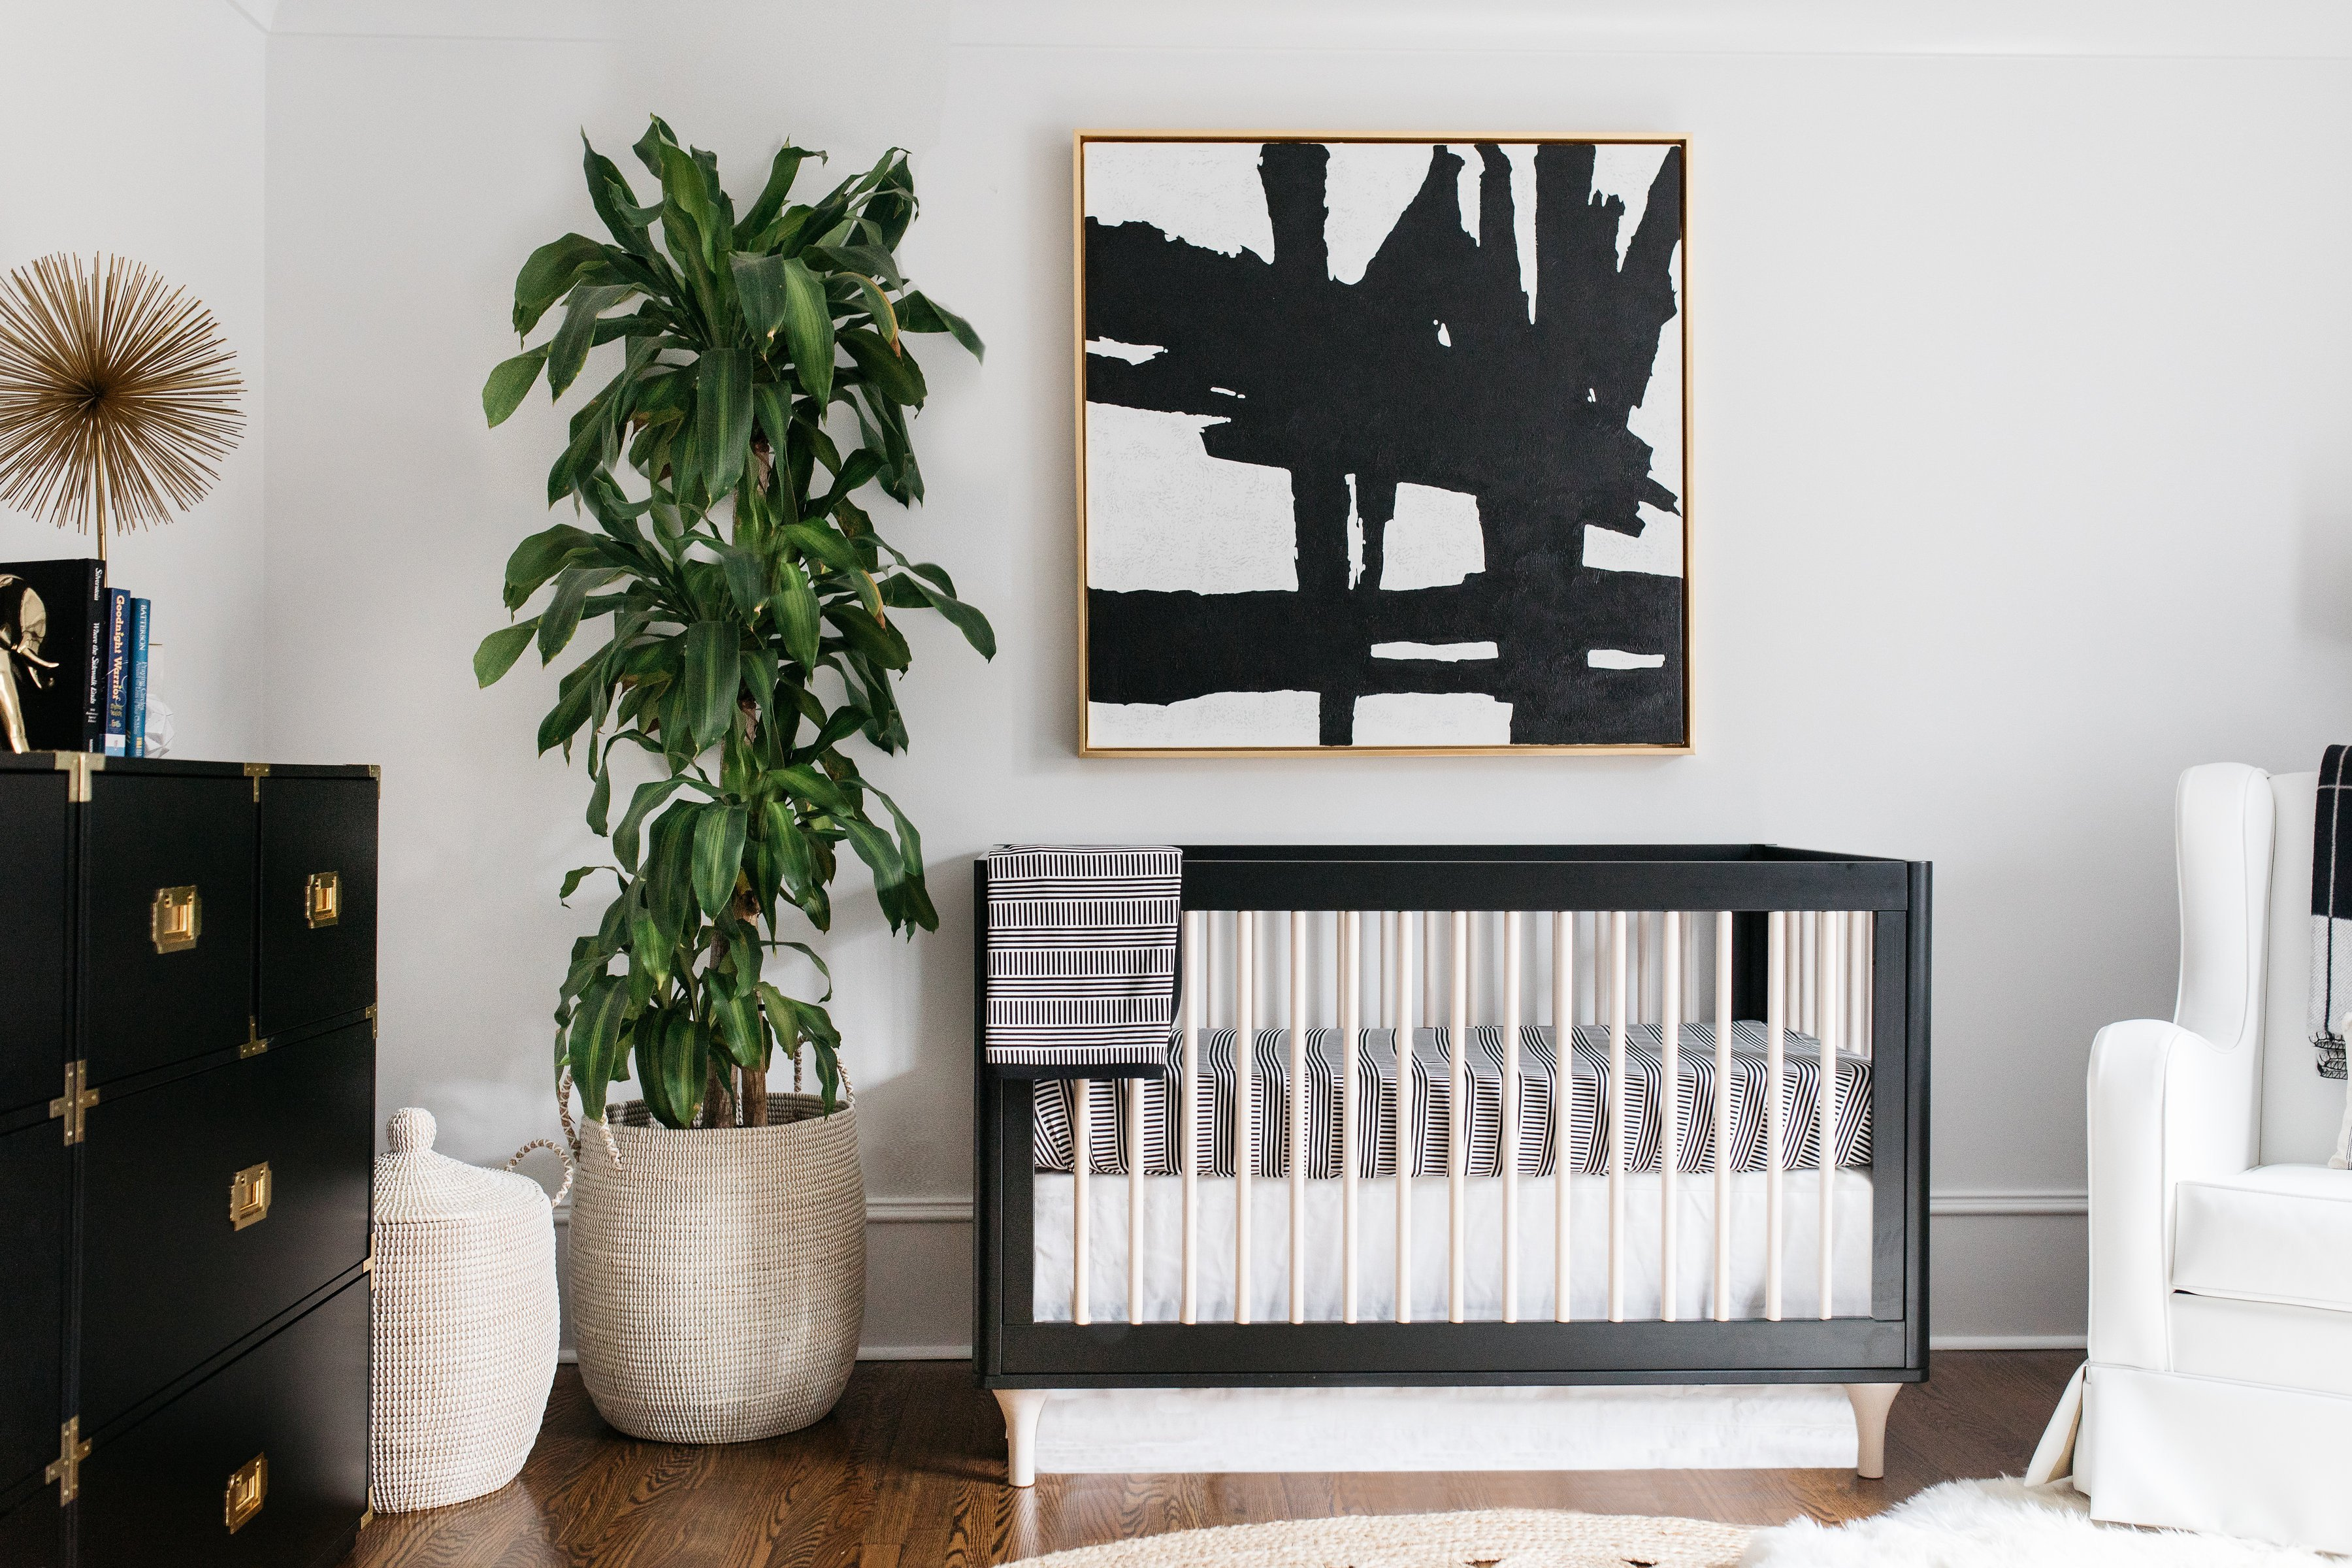 Black and White Nursery Decor Beautiful Celebrity Design Reveal Emily Maynard S Nursery Project Nursery